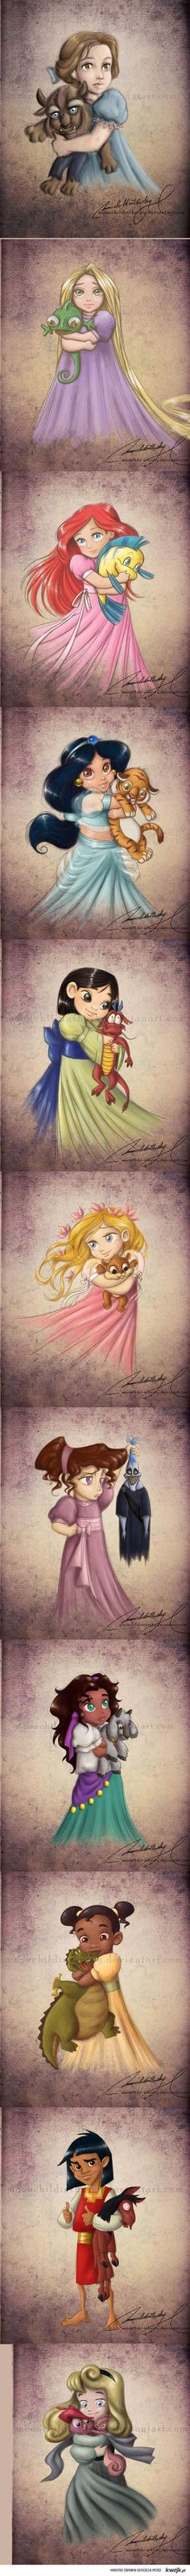 Super cute. This is different, love it. I love finding new Disney art!